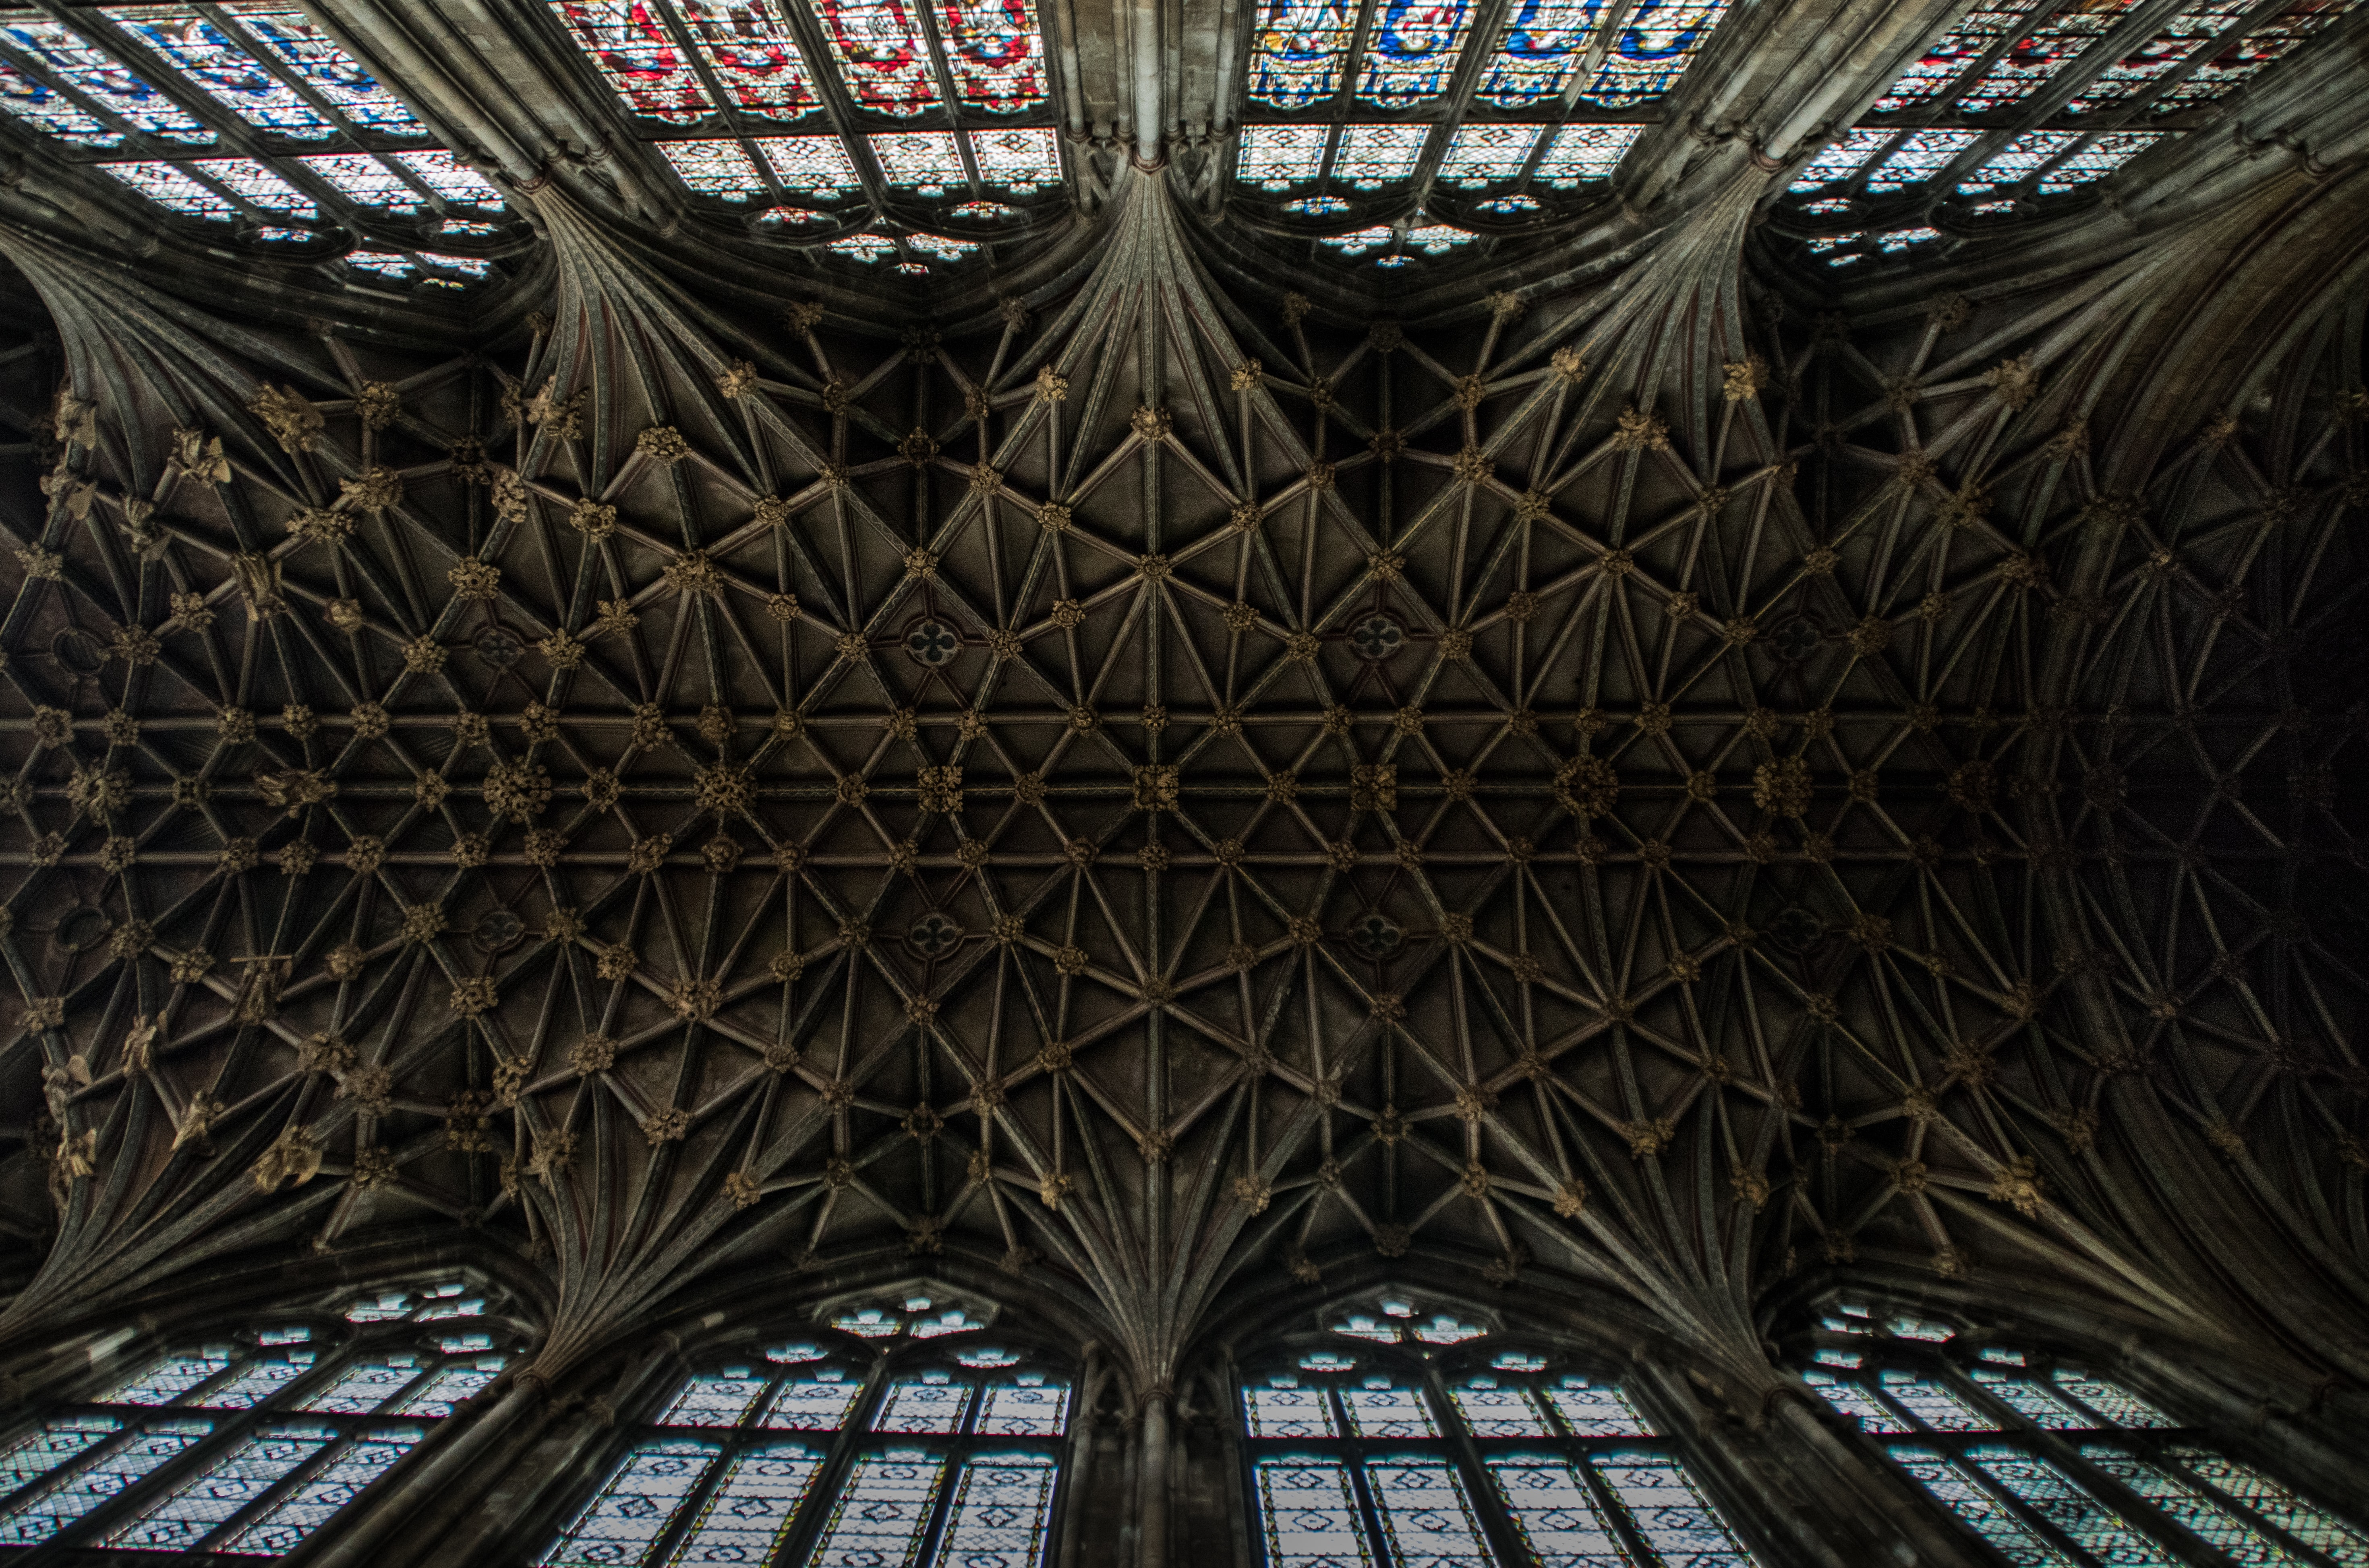 worm's-eye view of gray cathedral ceiling